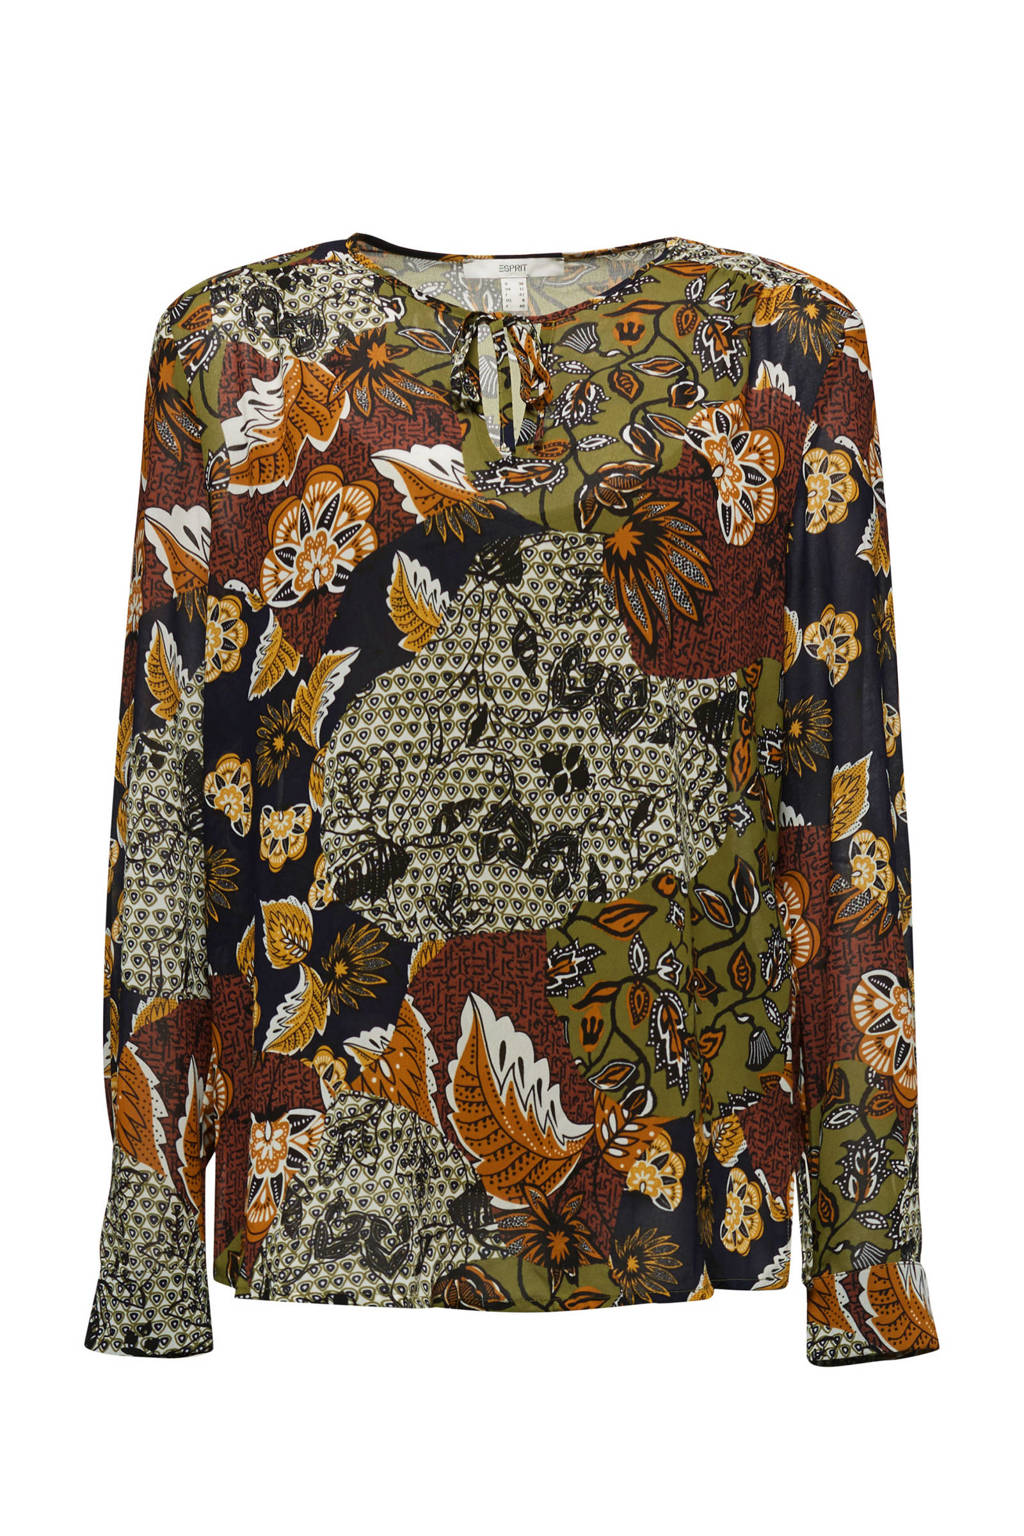 ESPRIT Women Casual semi-transparante top met all over print en open detail olijfgroen/donkerrood/donkerblauw, Olijfgroen/donkerrood/donkerblauw